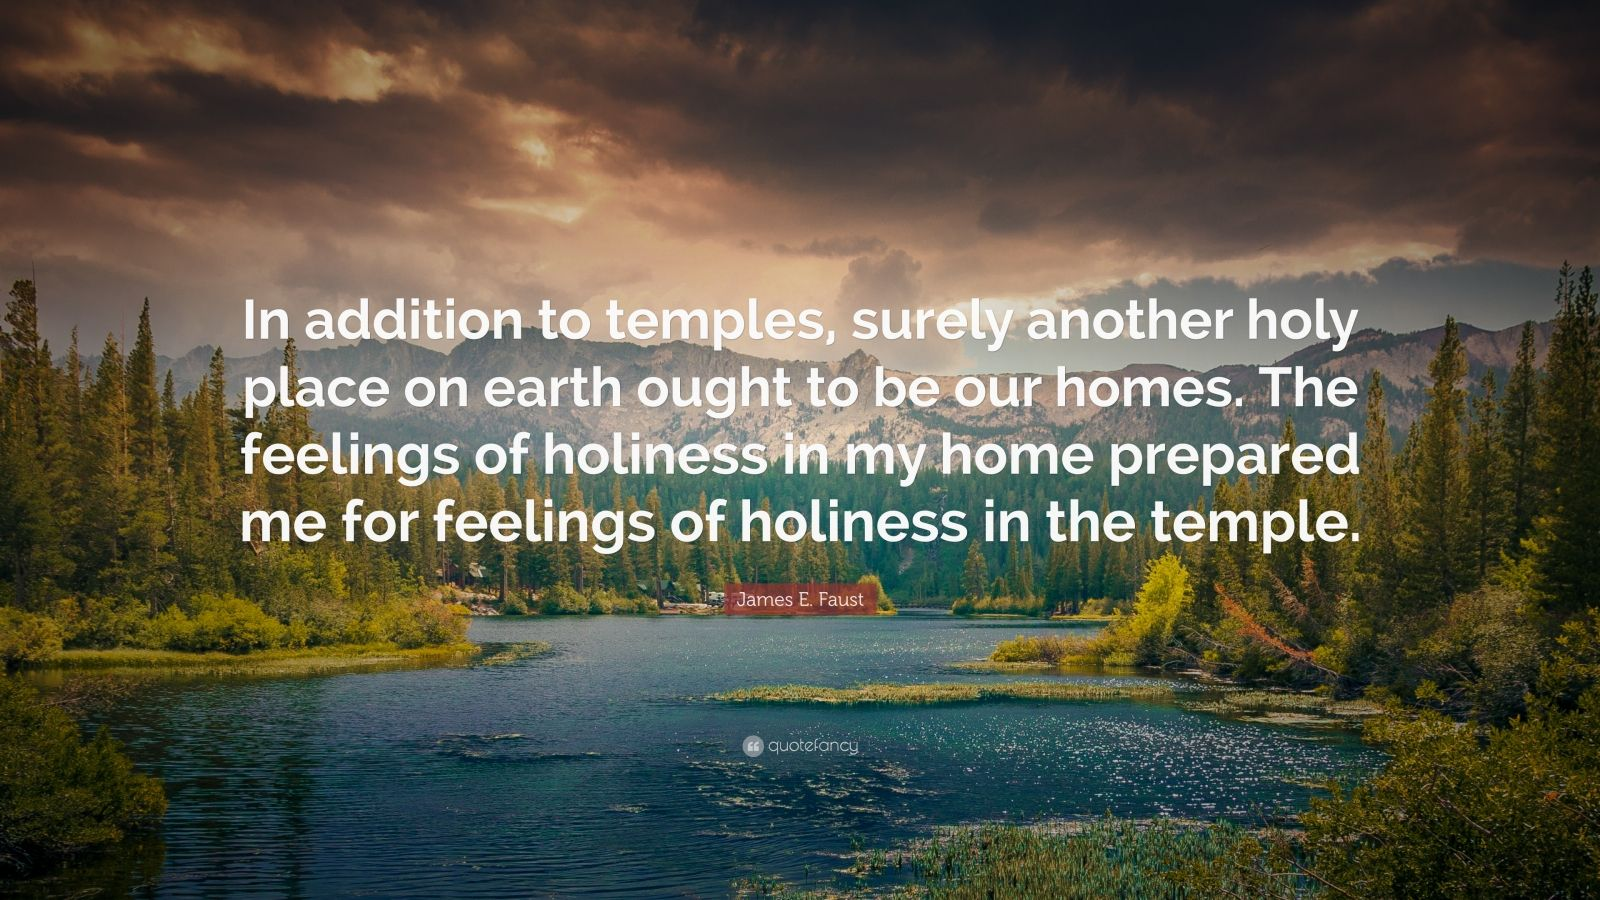 """James E. Faust Quote: """"In addition to temples, surely another holy place on earth ought to be our homes. The feelings of holiness in my home prepared me for feelings of holiness in the temple."""""""